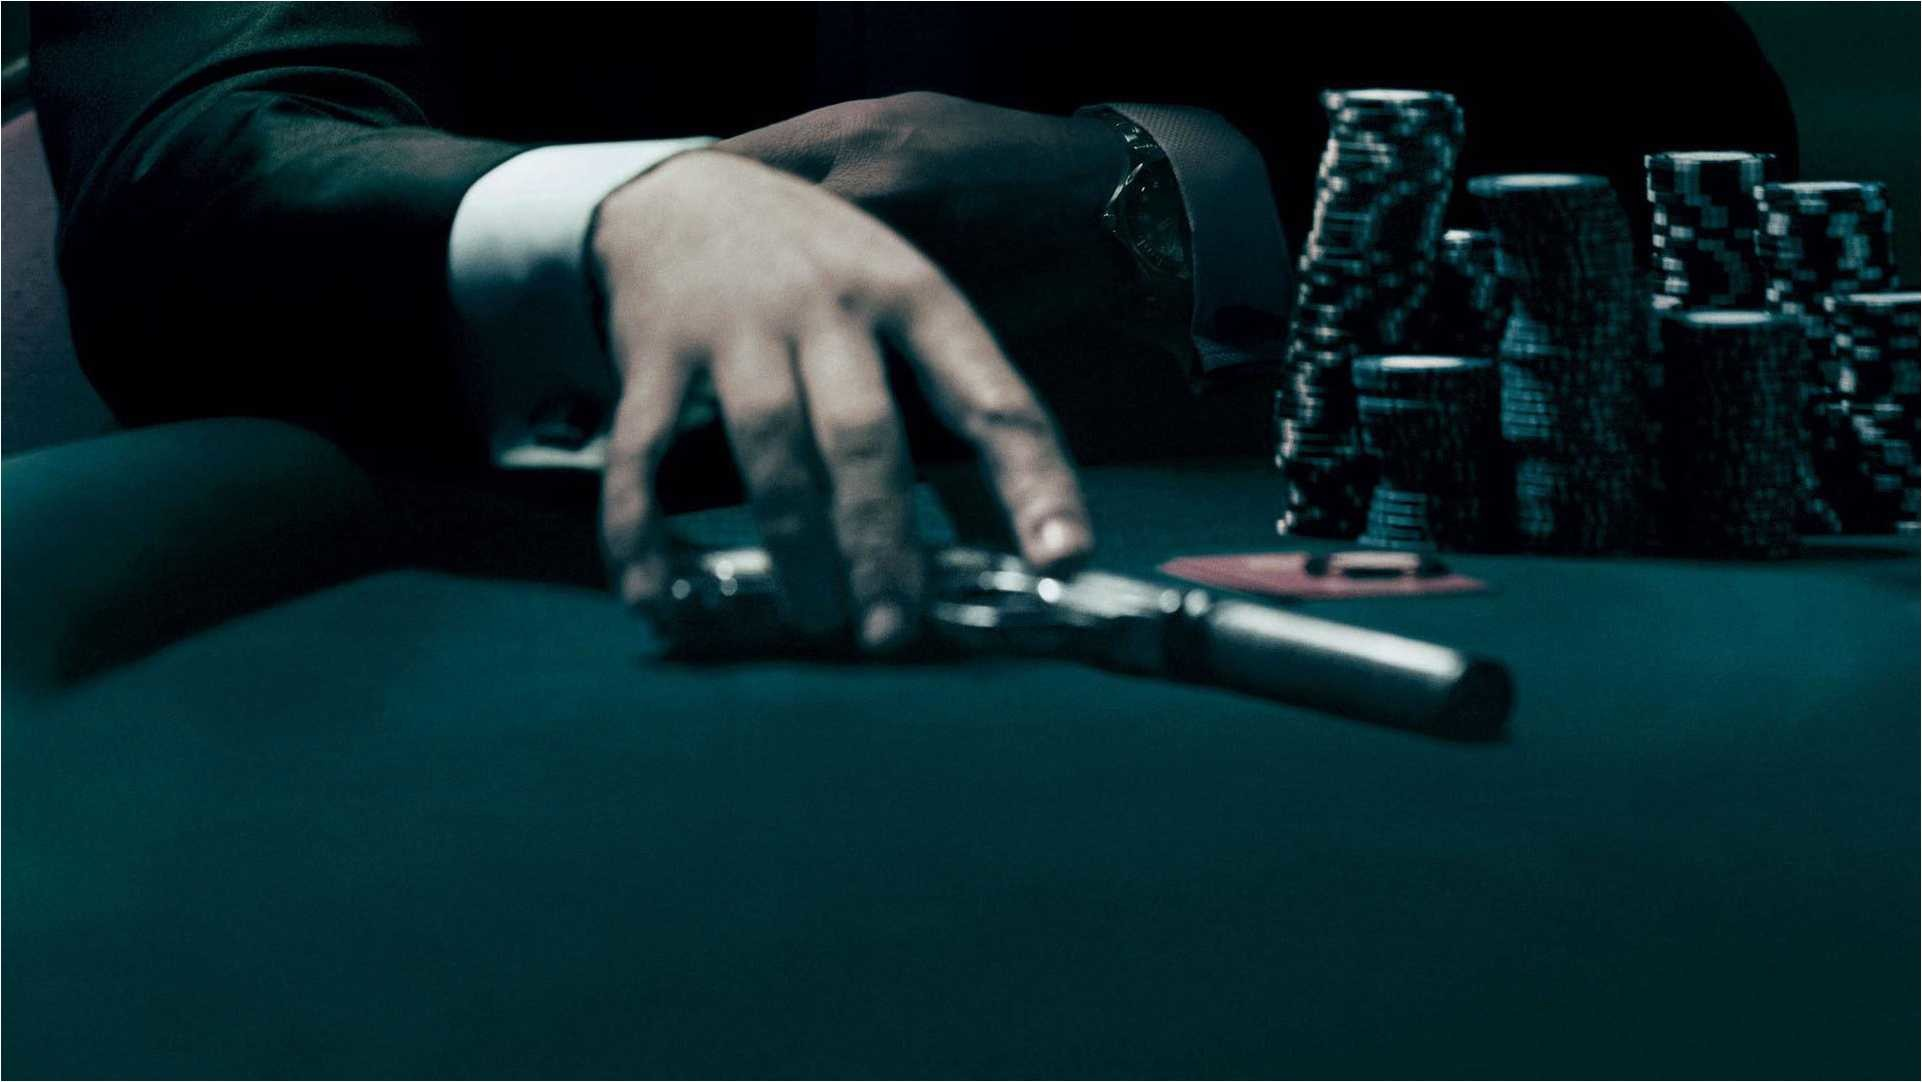 1922x1082 Casino Royale Awesome Photo | 63490982 Casino Royale Wallpapers, 1920x1080  px